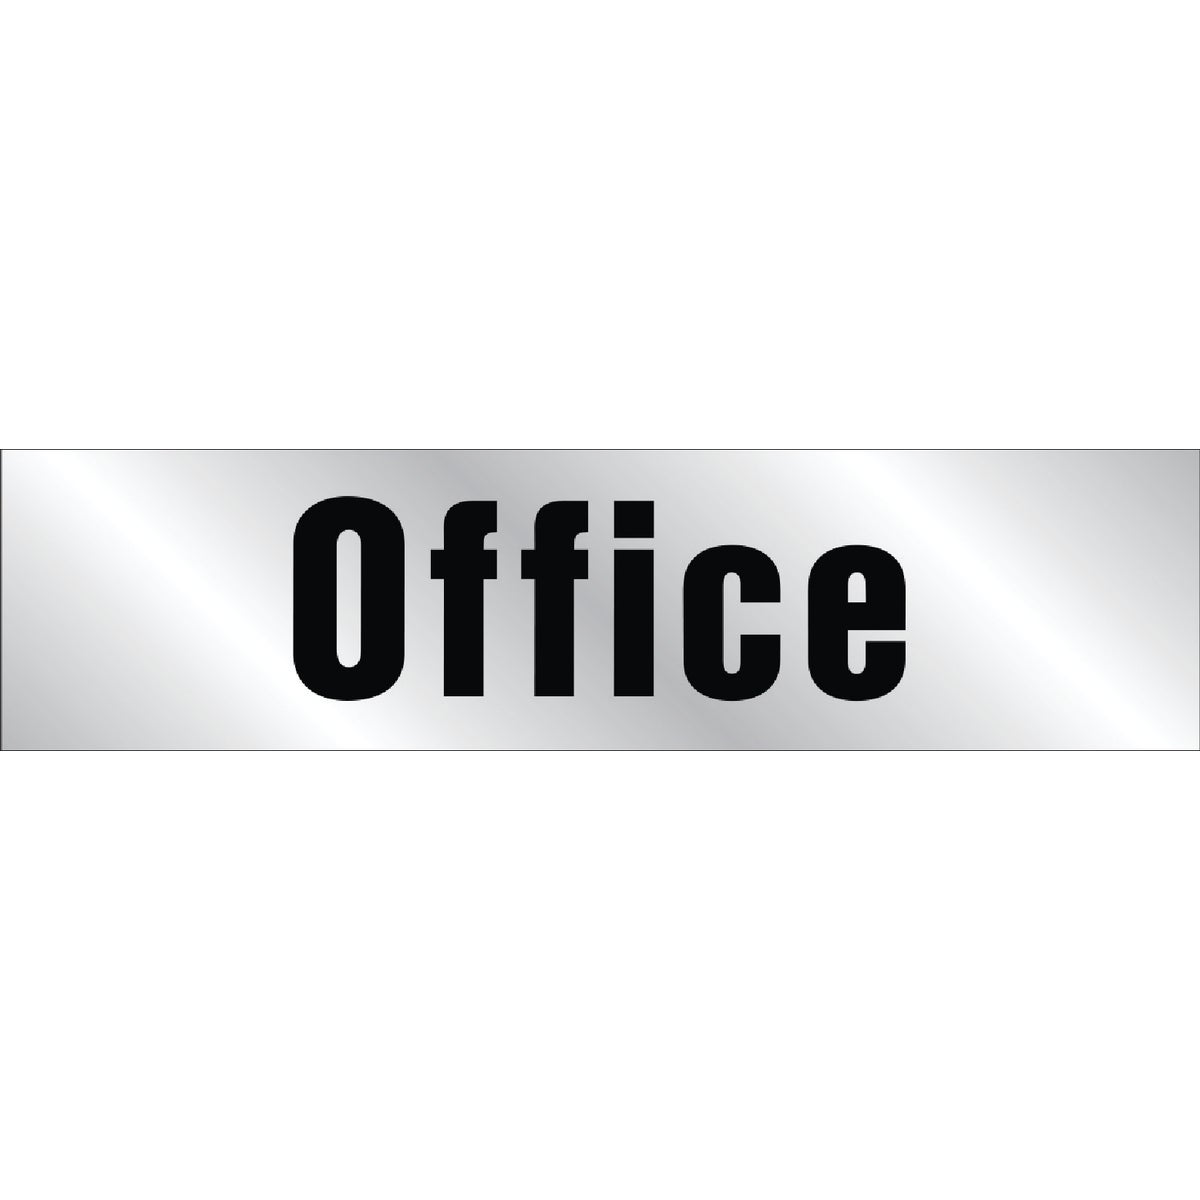 8-1/2X2 OFFICE SIGN - 431 by Hy Ko Prods Co